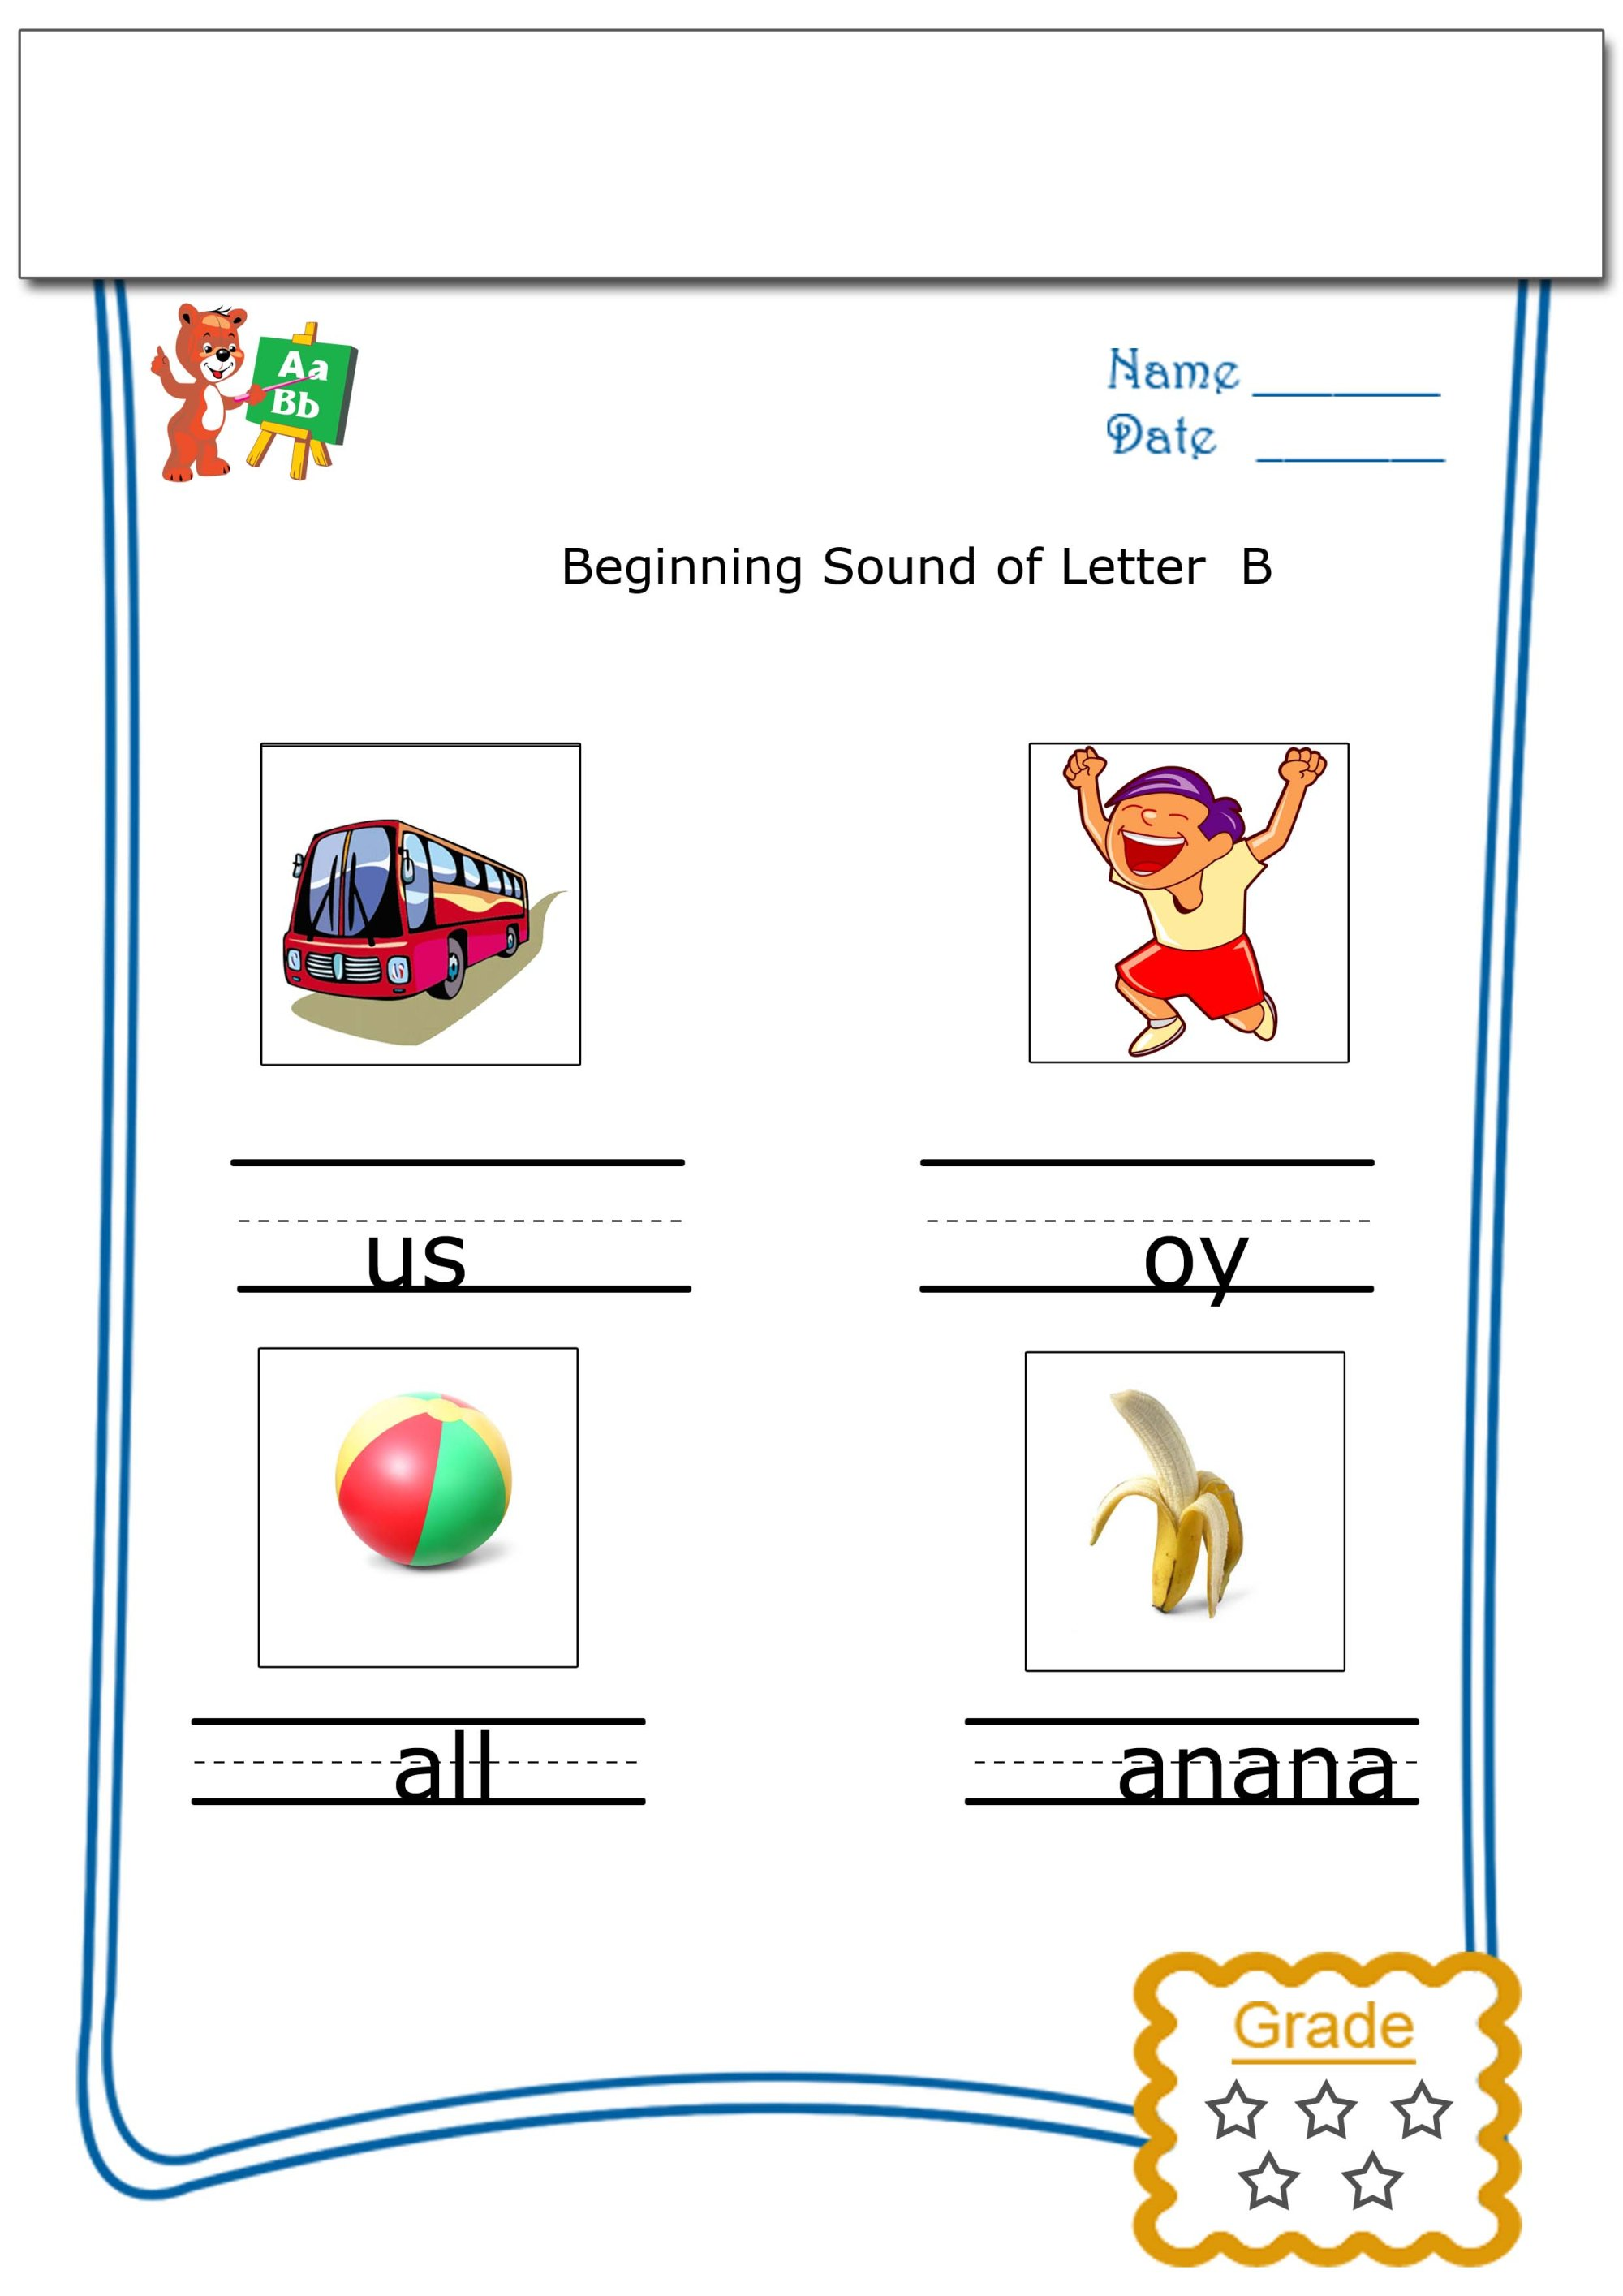 hight resolution of Sound And Vibration Worksheets For Children   Printable Worksheets and  Activities for Teachers